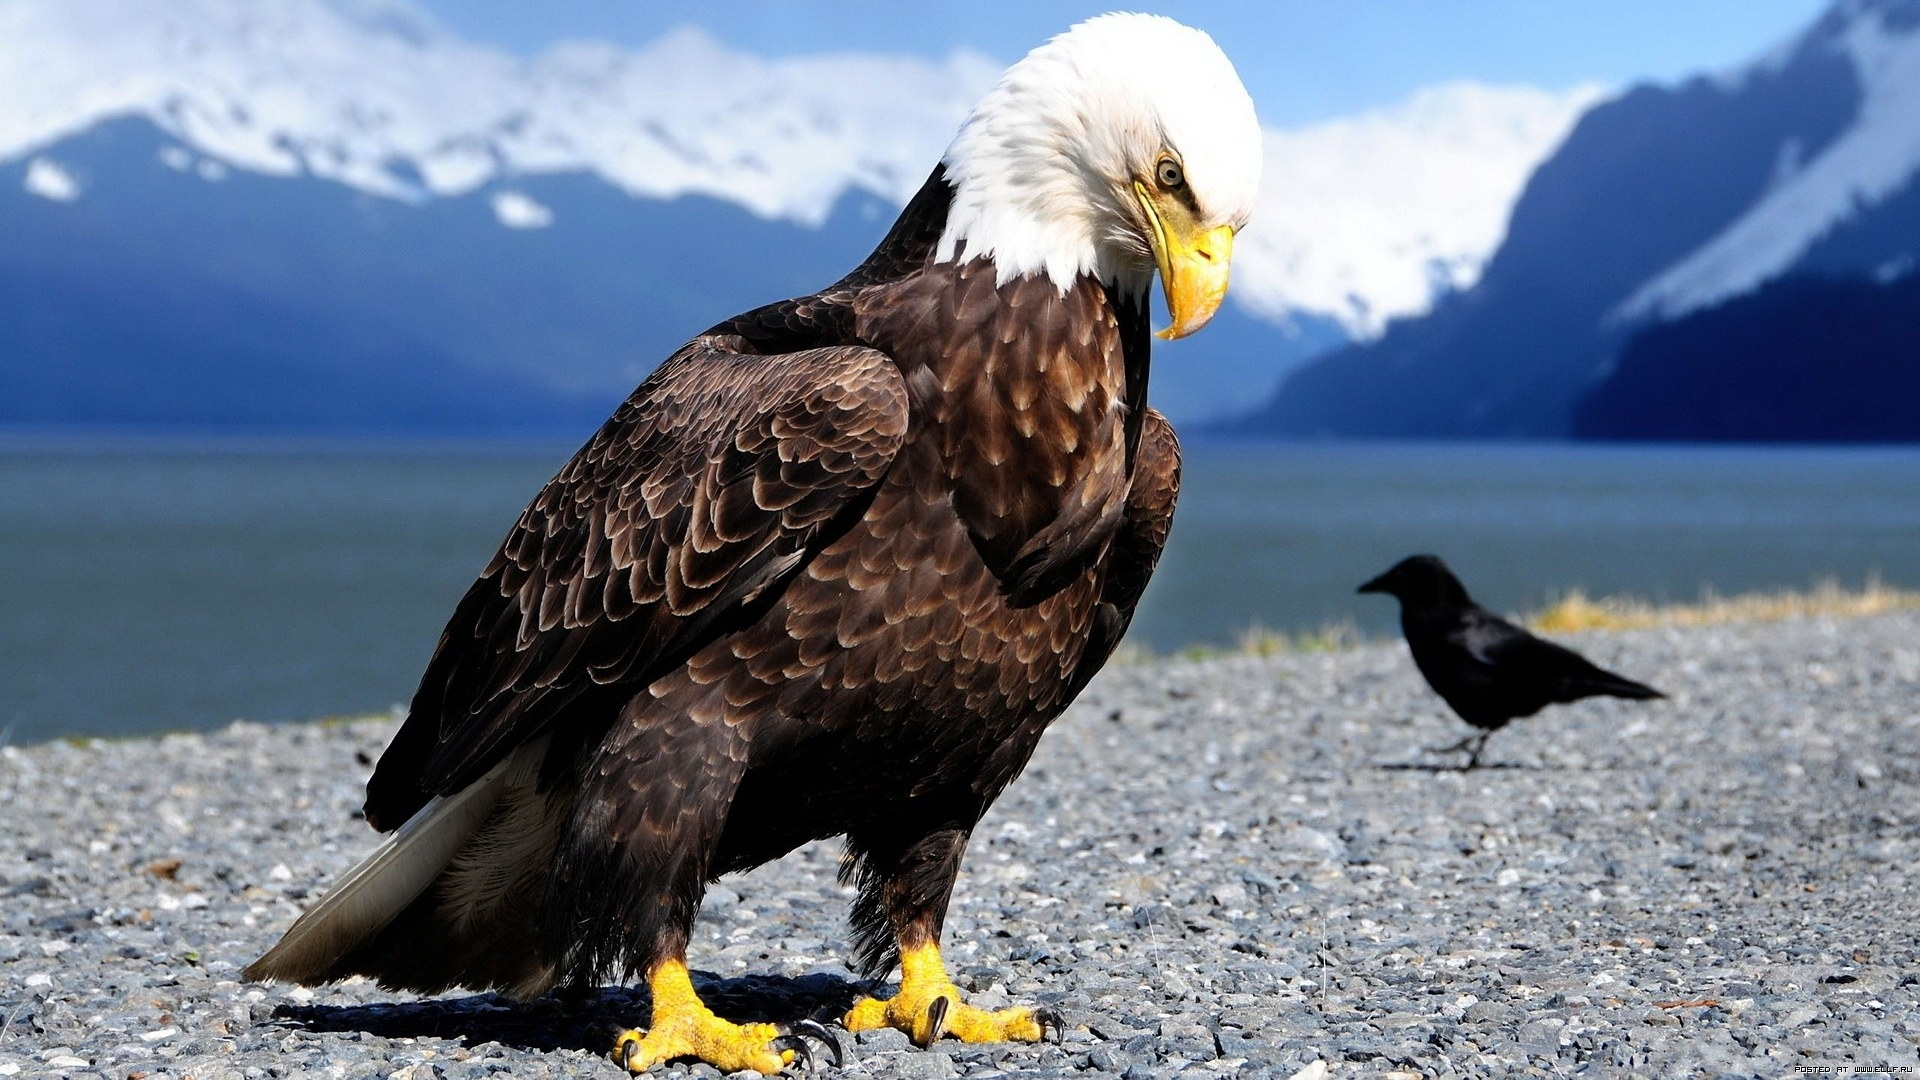 50271 download wallpaper Animals, Birds, Eagles screensavers and pictures for free